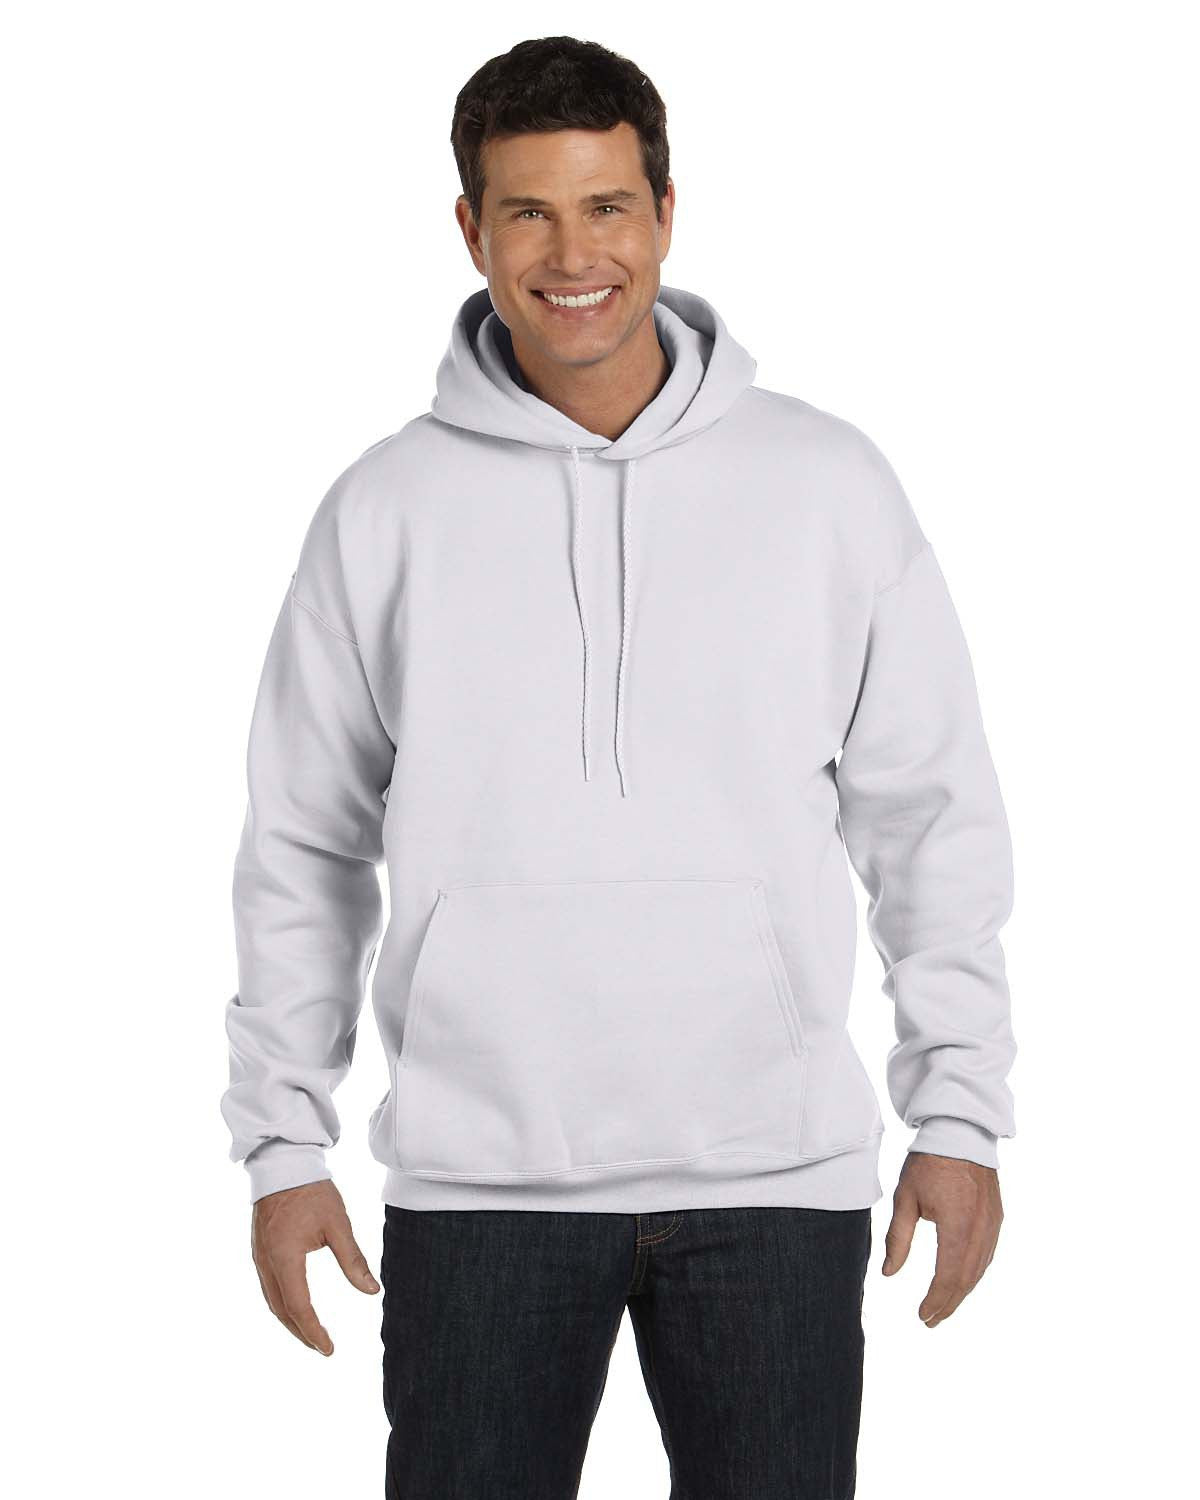 Ultimate Heavyweight Hooded Sweatshirt